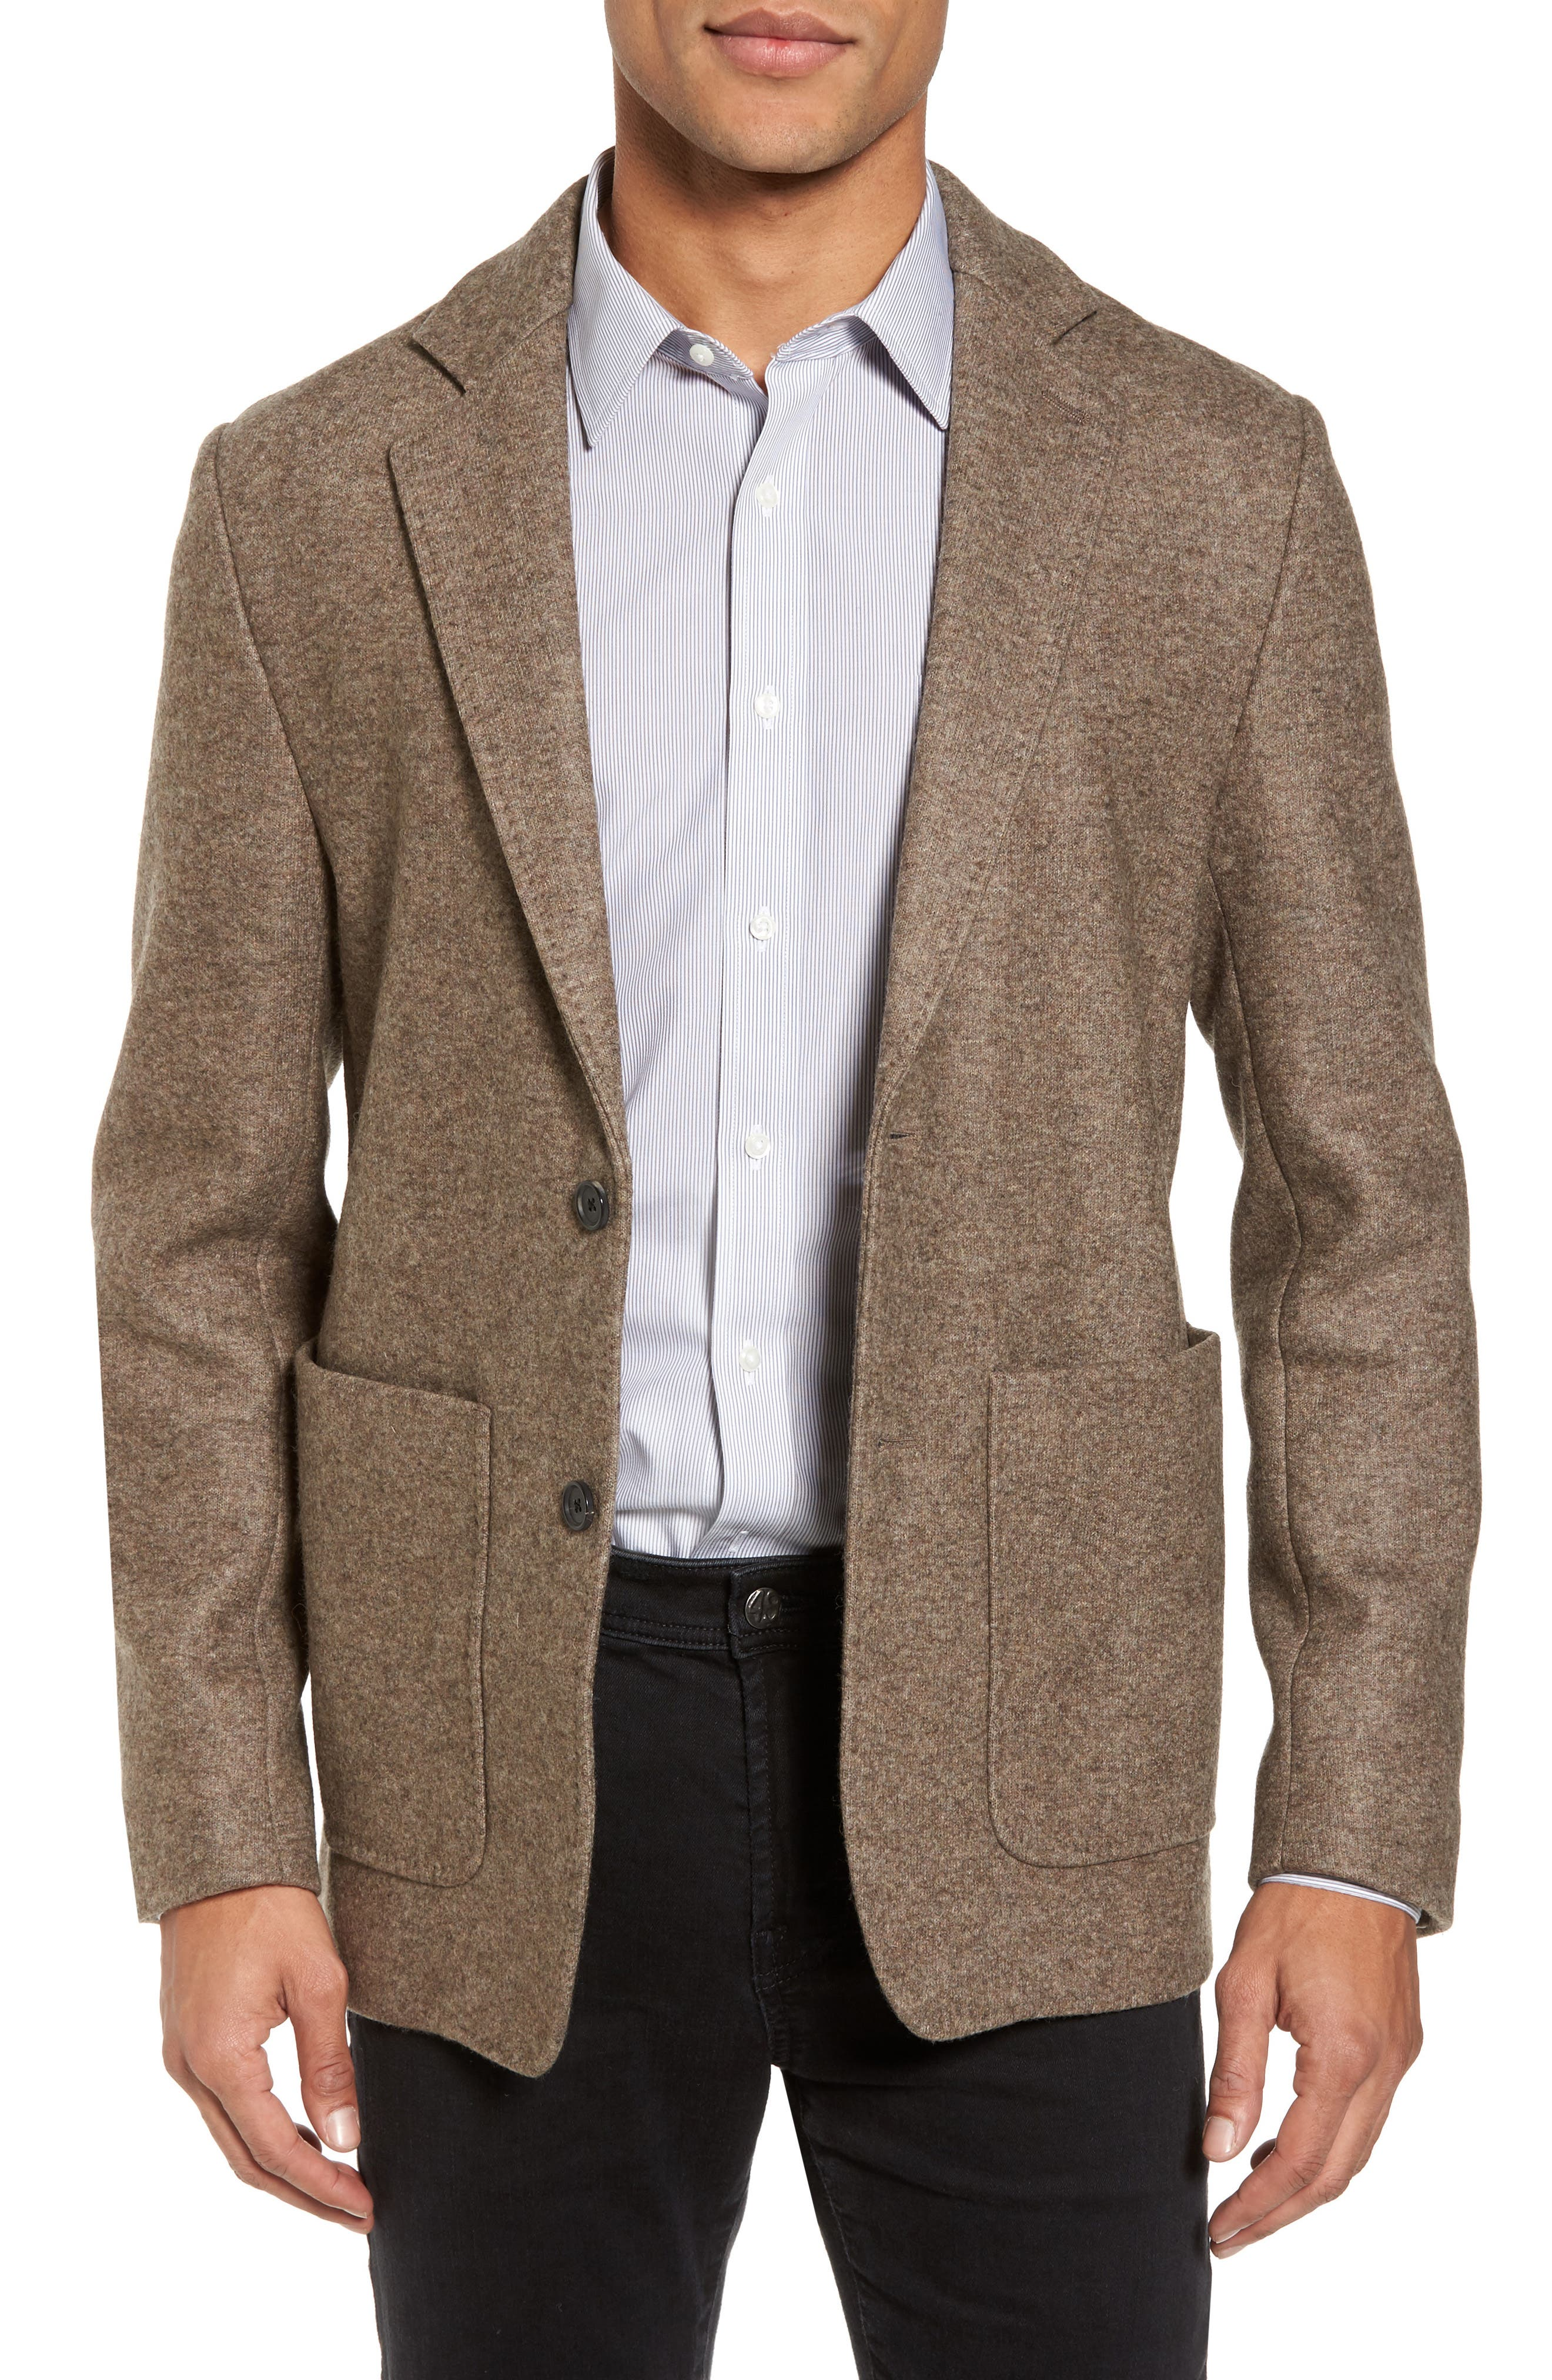 Dylan Knit Wool Blend Sport Coat,                         Main,                         color, Taupe